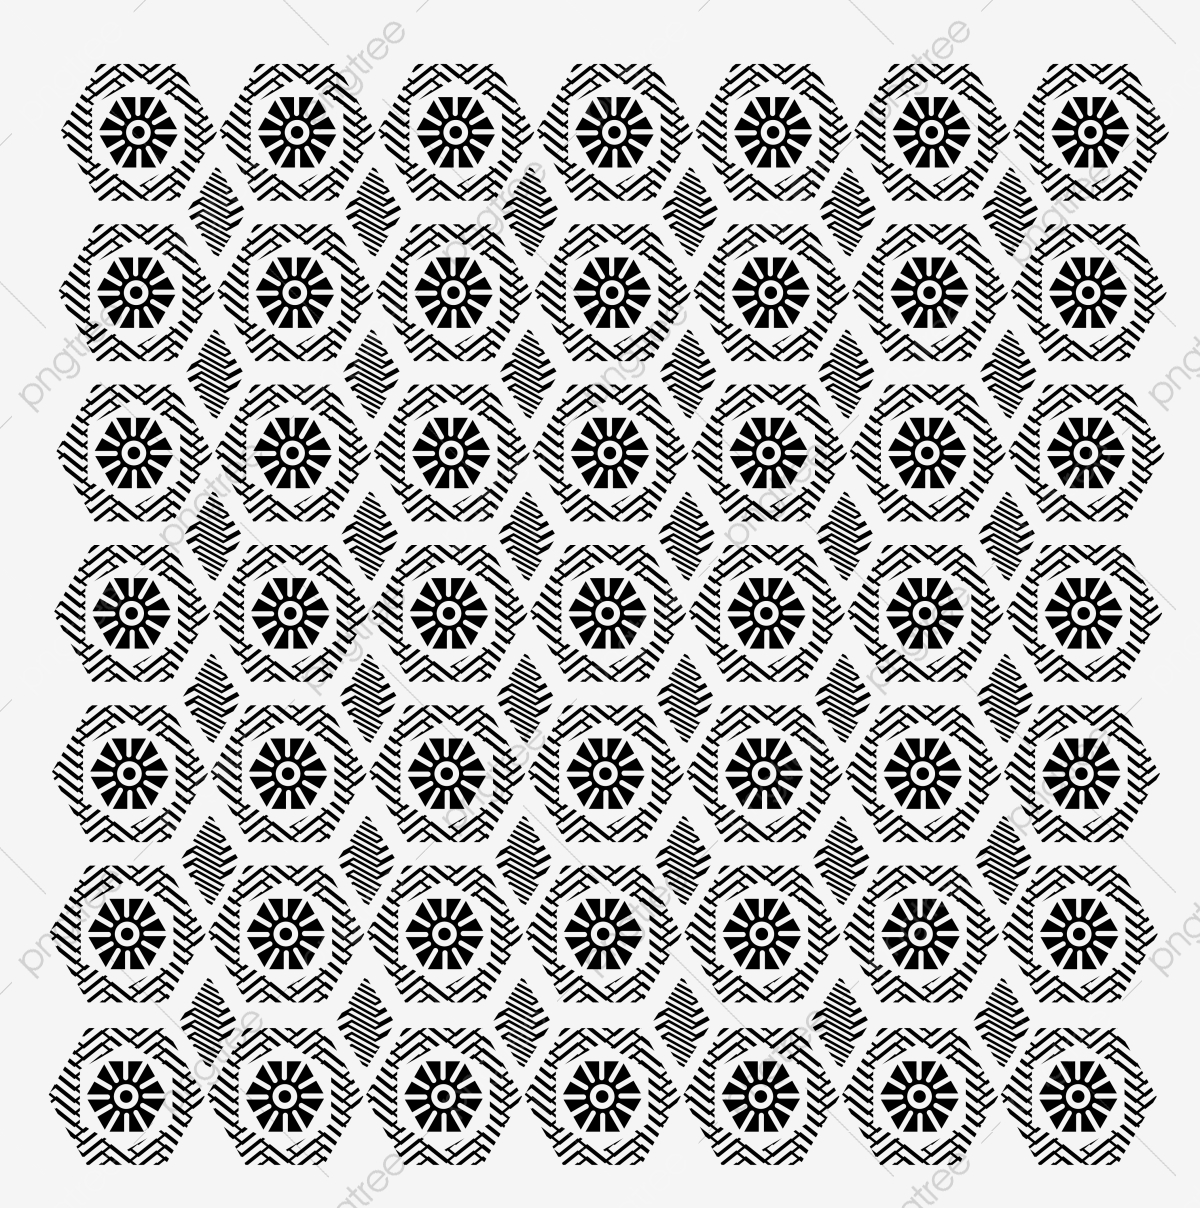 vector freeuse library Houndstooth vector transparent. Black and white pattern